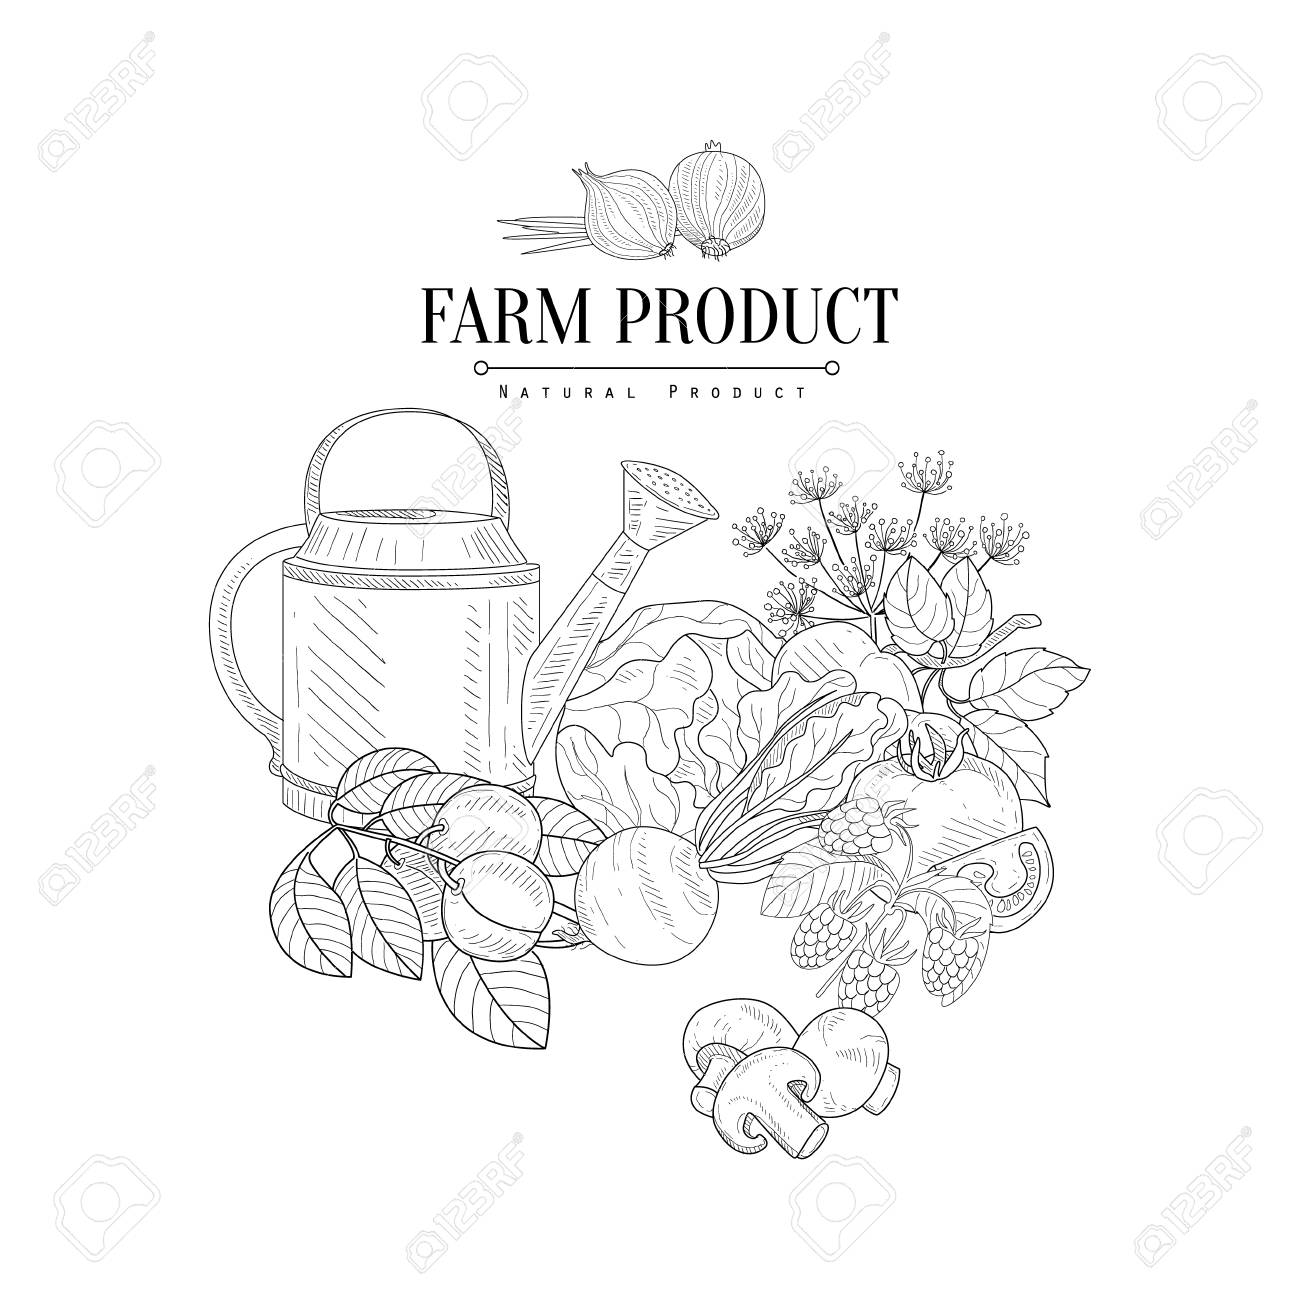 Farm Product Hand Drawn Realistic Detailed Sketch In Classy Simple ... for Simple Farm Sketch  113cpg